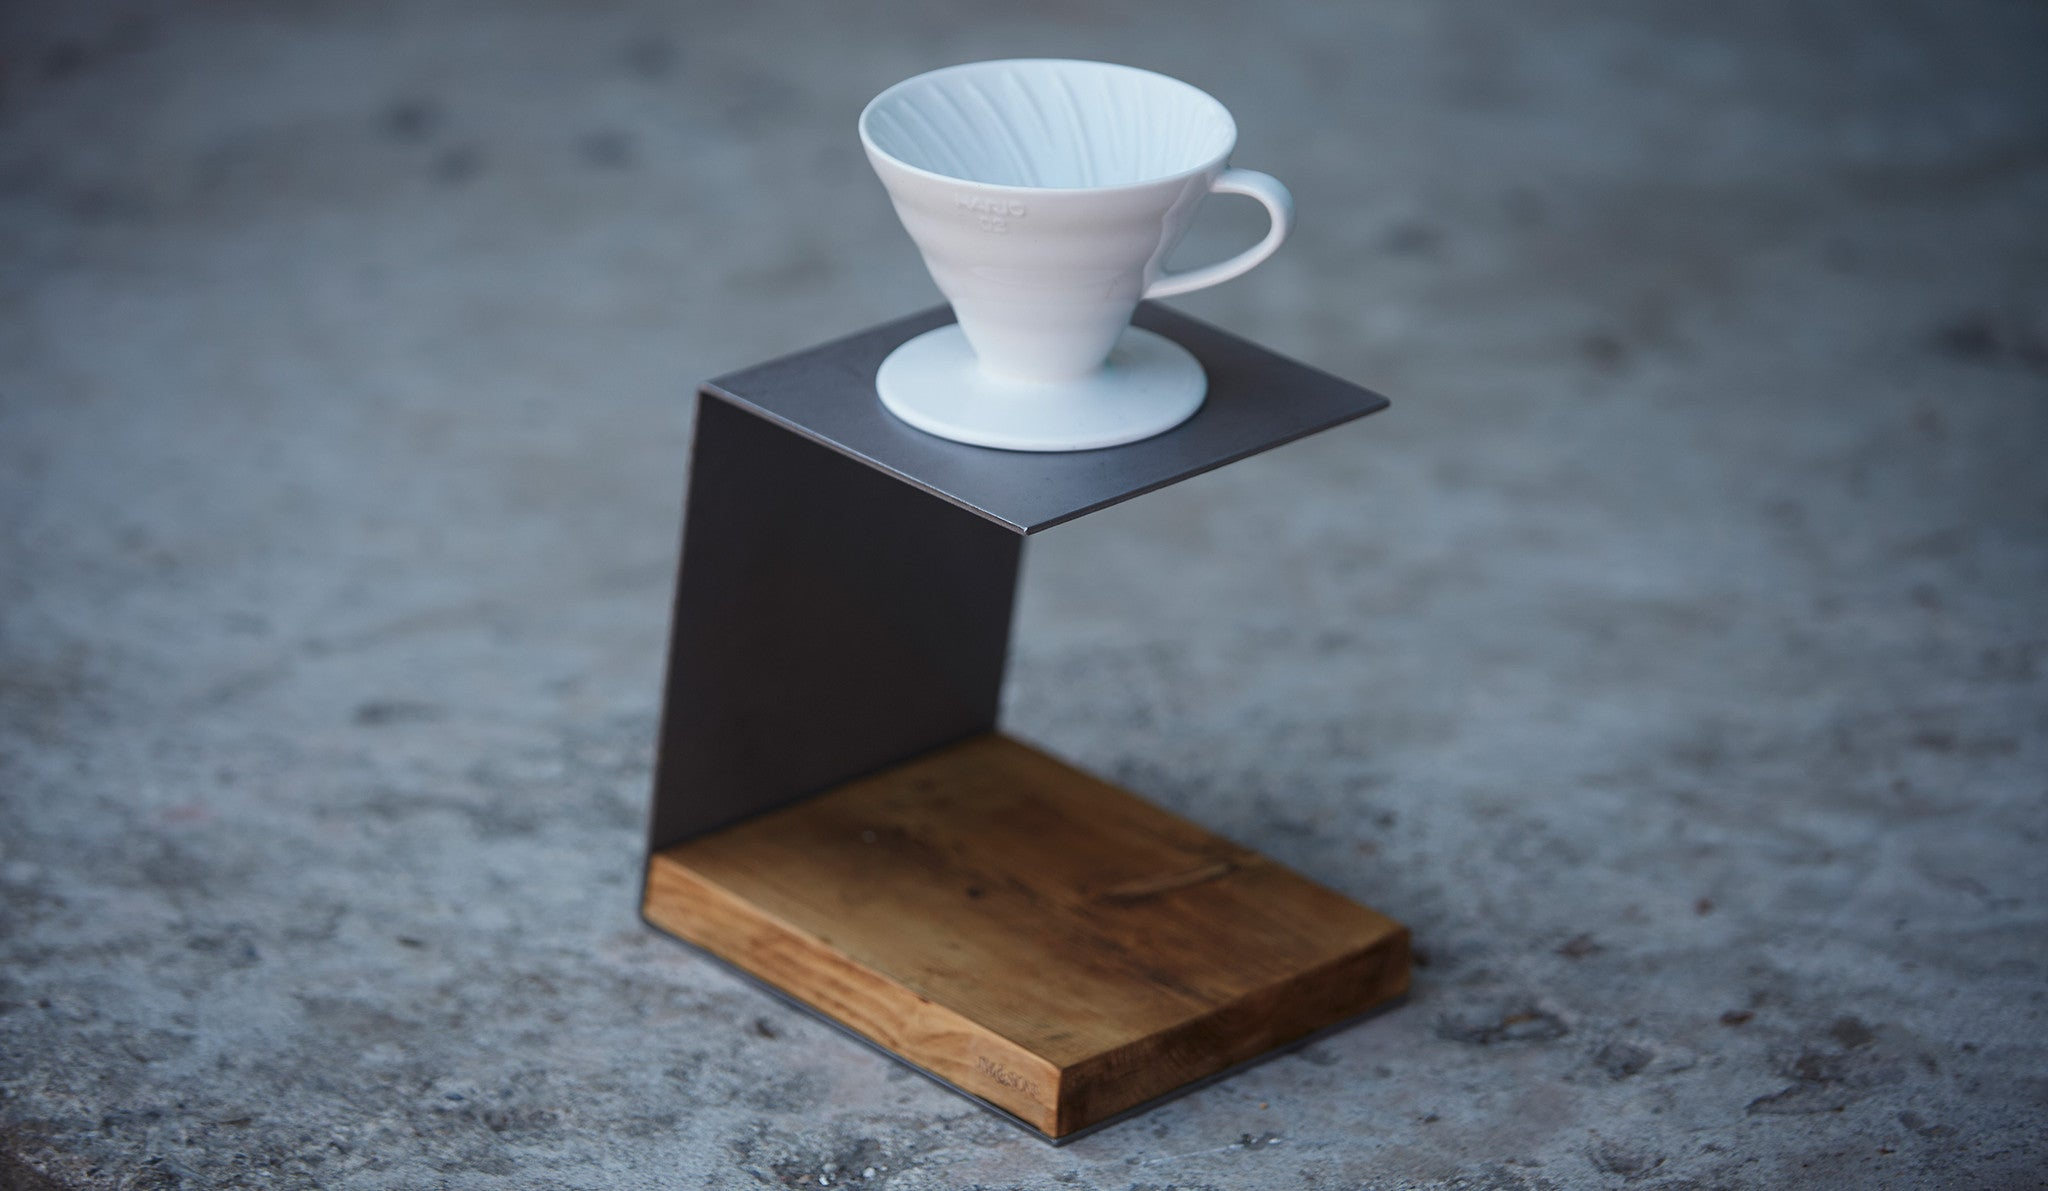 Top 3 Rated Best Pour Over Coffee Stands Pour Over Coffee